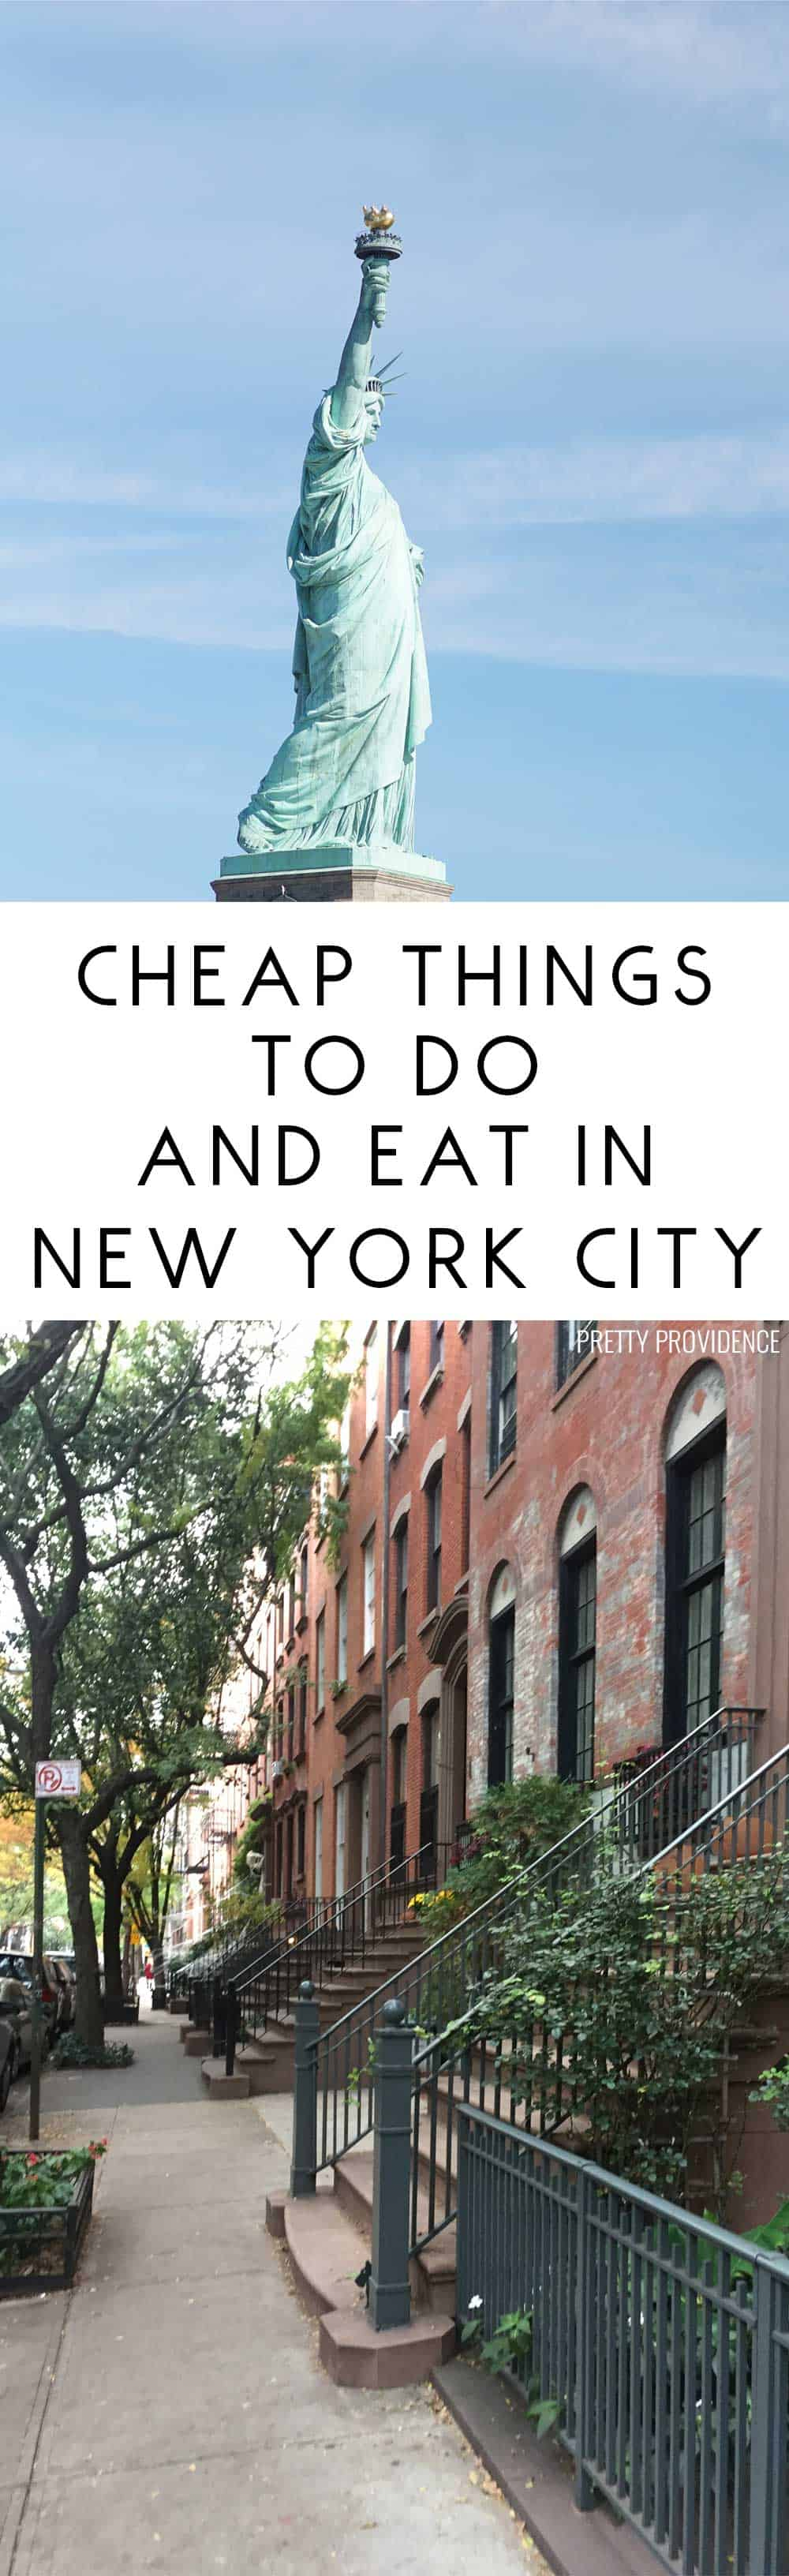 There are some really good, fun ideas in here! Not everything in you do in NYC has to be expensive!